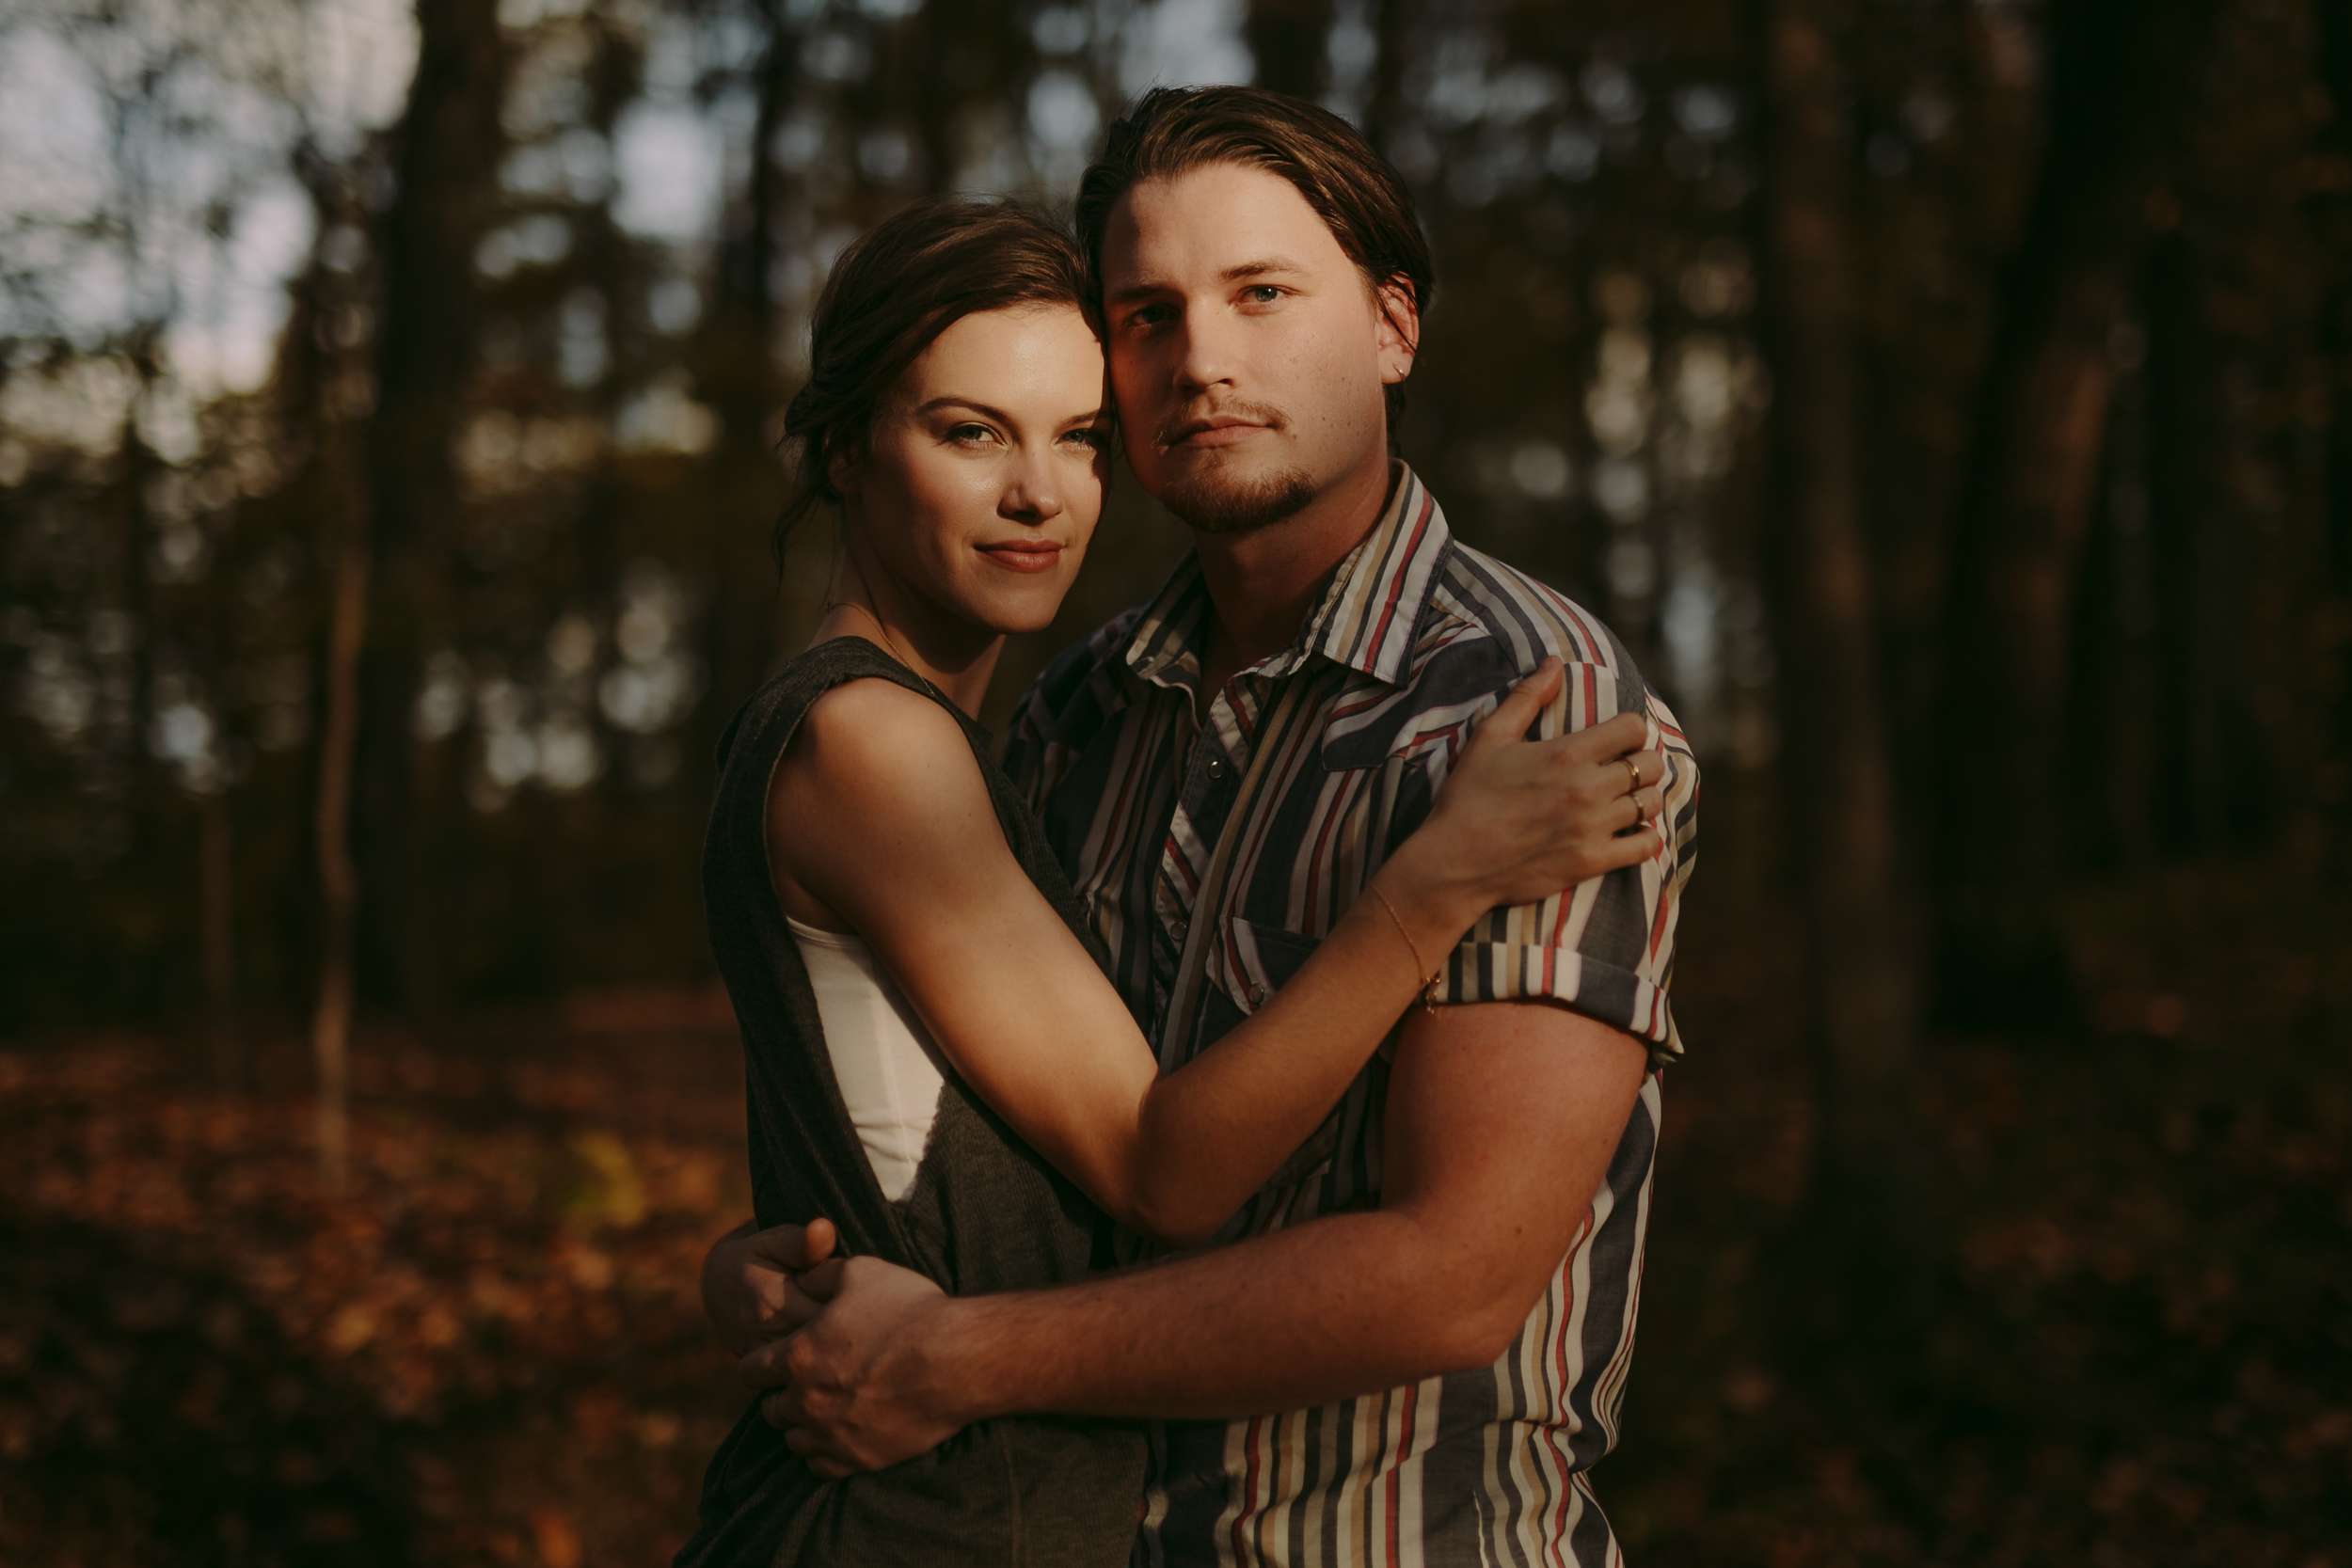 Hannah + Will Engagement Photos at Percy Warner Photography Anthology (6 of 30).jpg